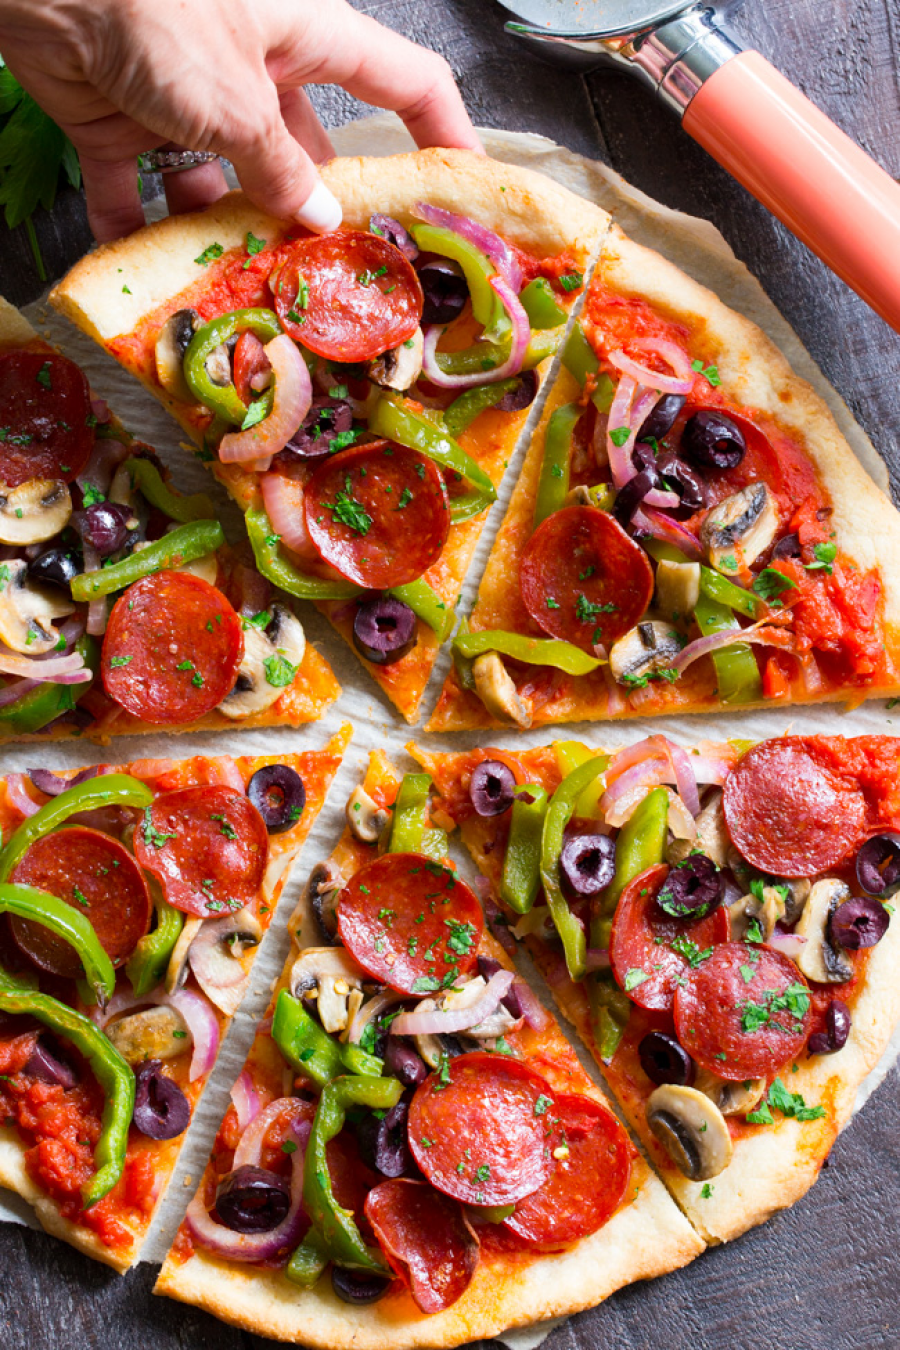 8 Strange Pizza Toppings That You Would Think Twice Before Trying